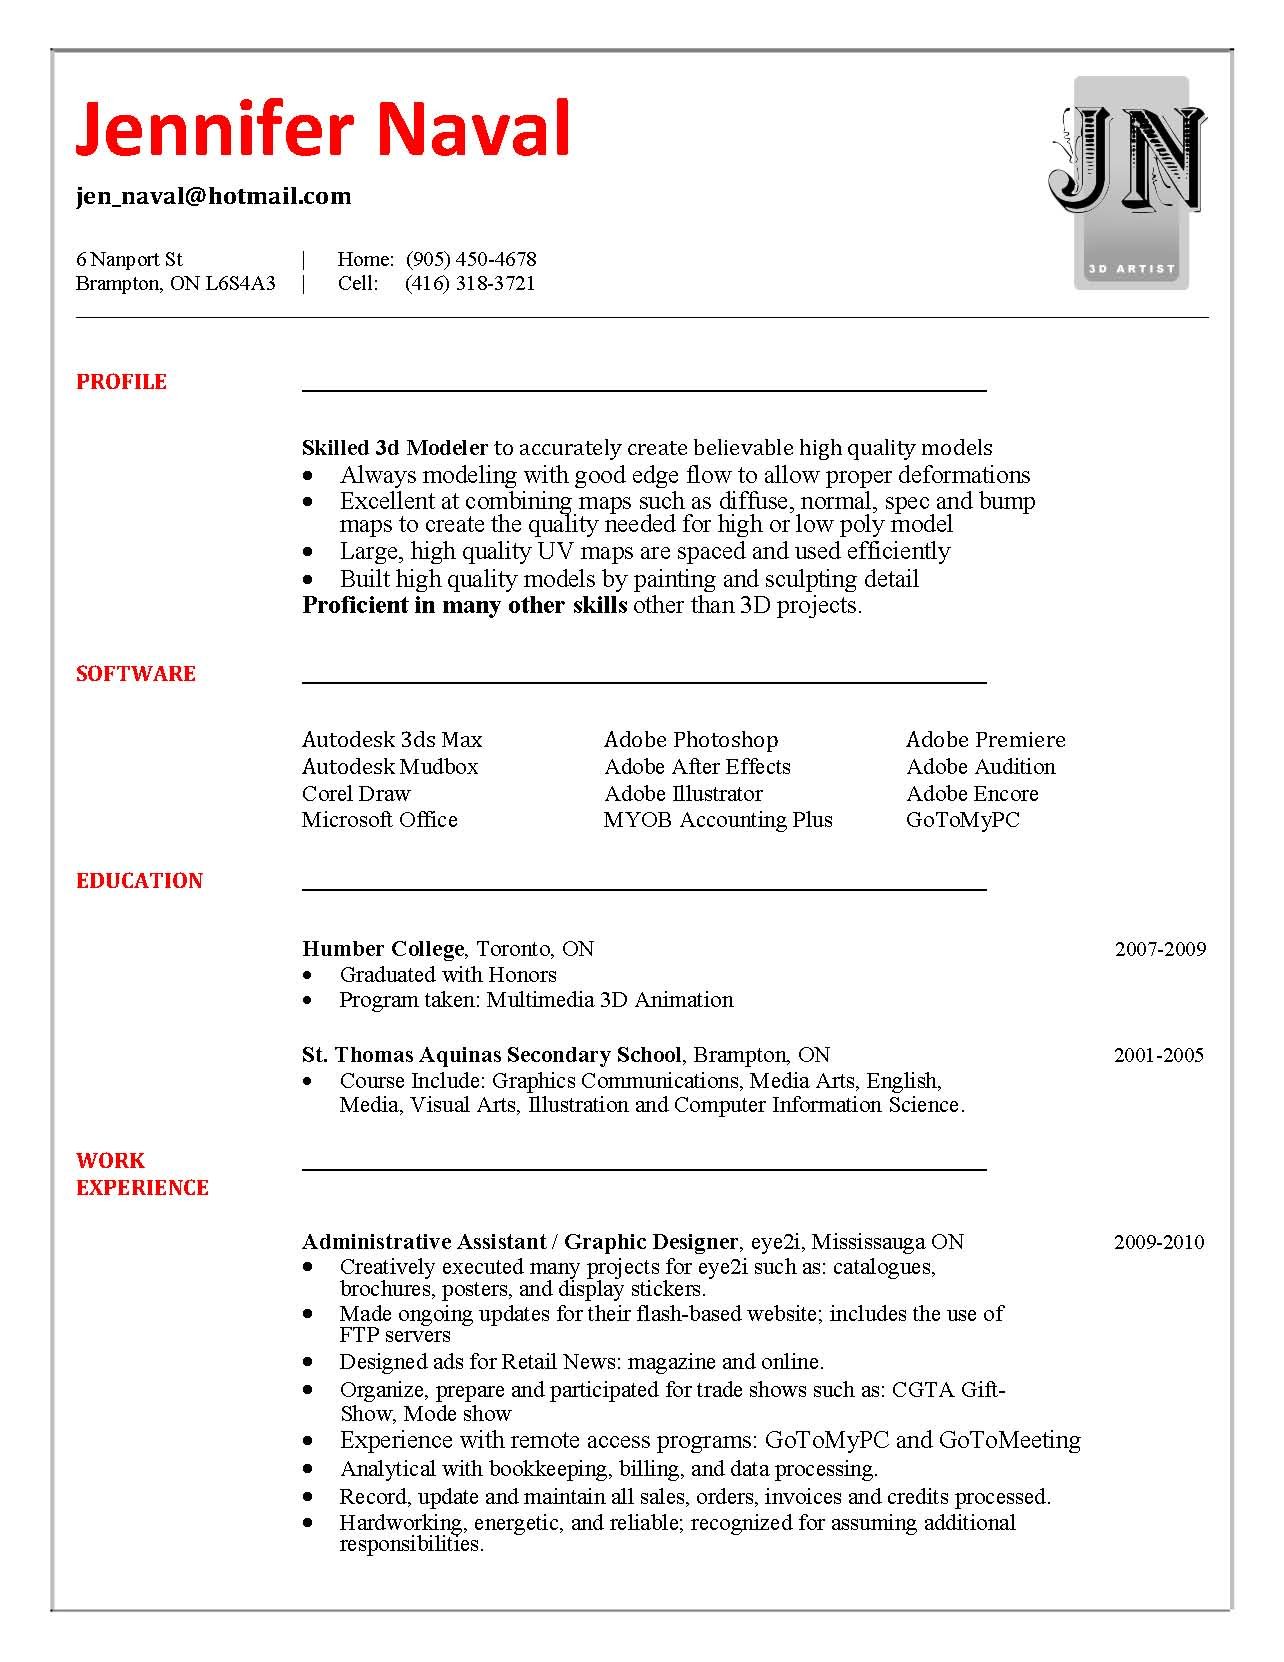 Beautiful 1 Inch Circle Template Tall 10 Best Resume Templates Regular 10 Envelope Template Indesign 100 Template Young 1099 Employee Contract Template Blue15 Year Old Student Resume Resume Pdf   Cv Resume Template Examples